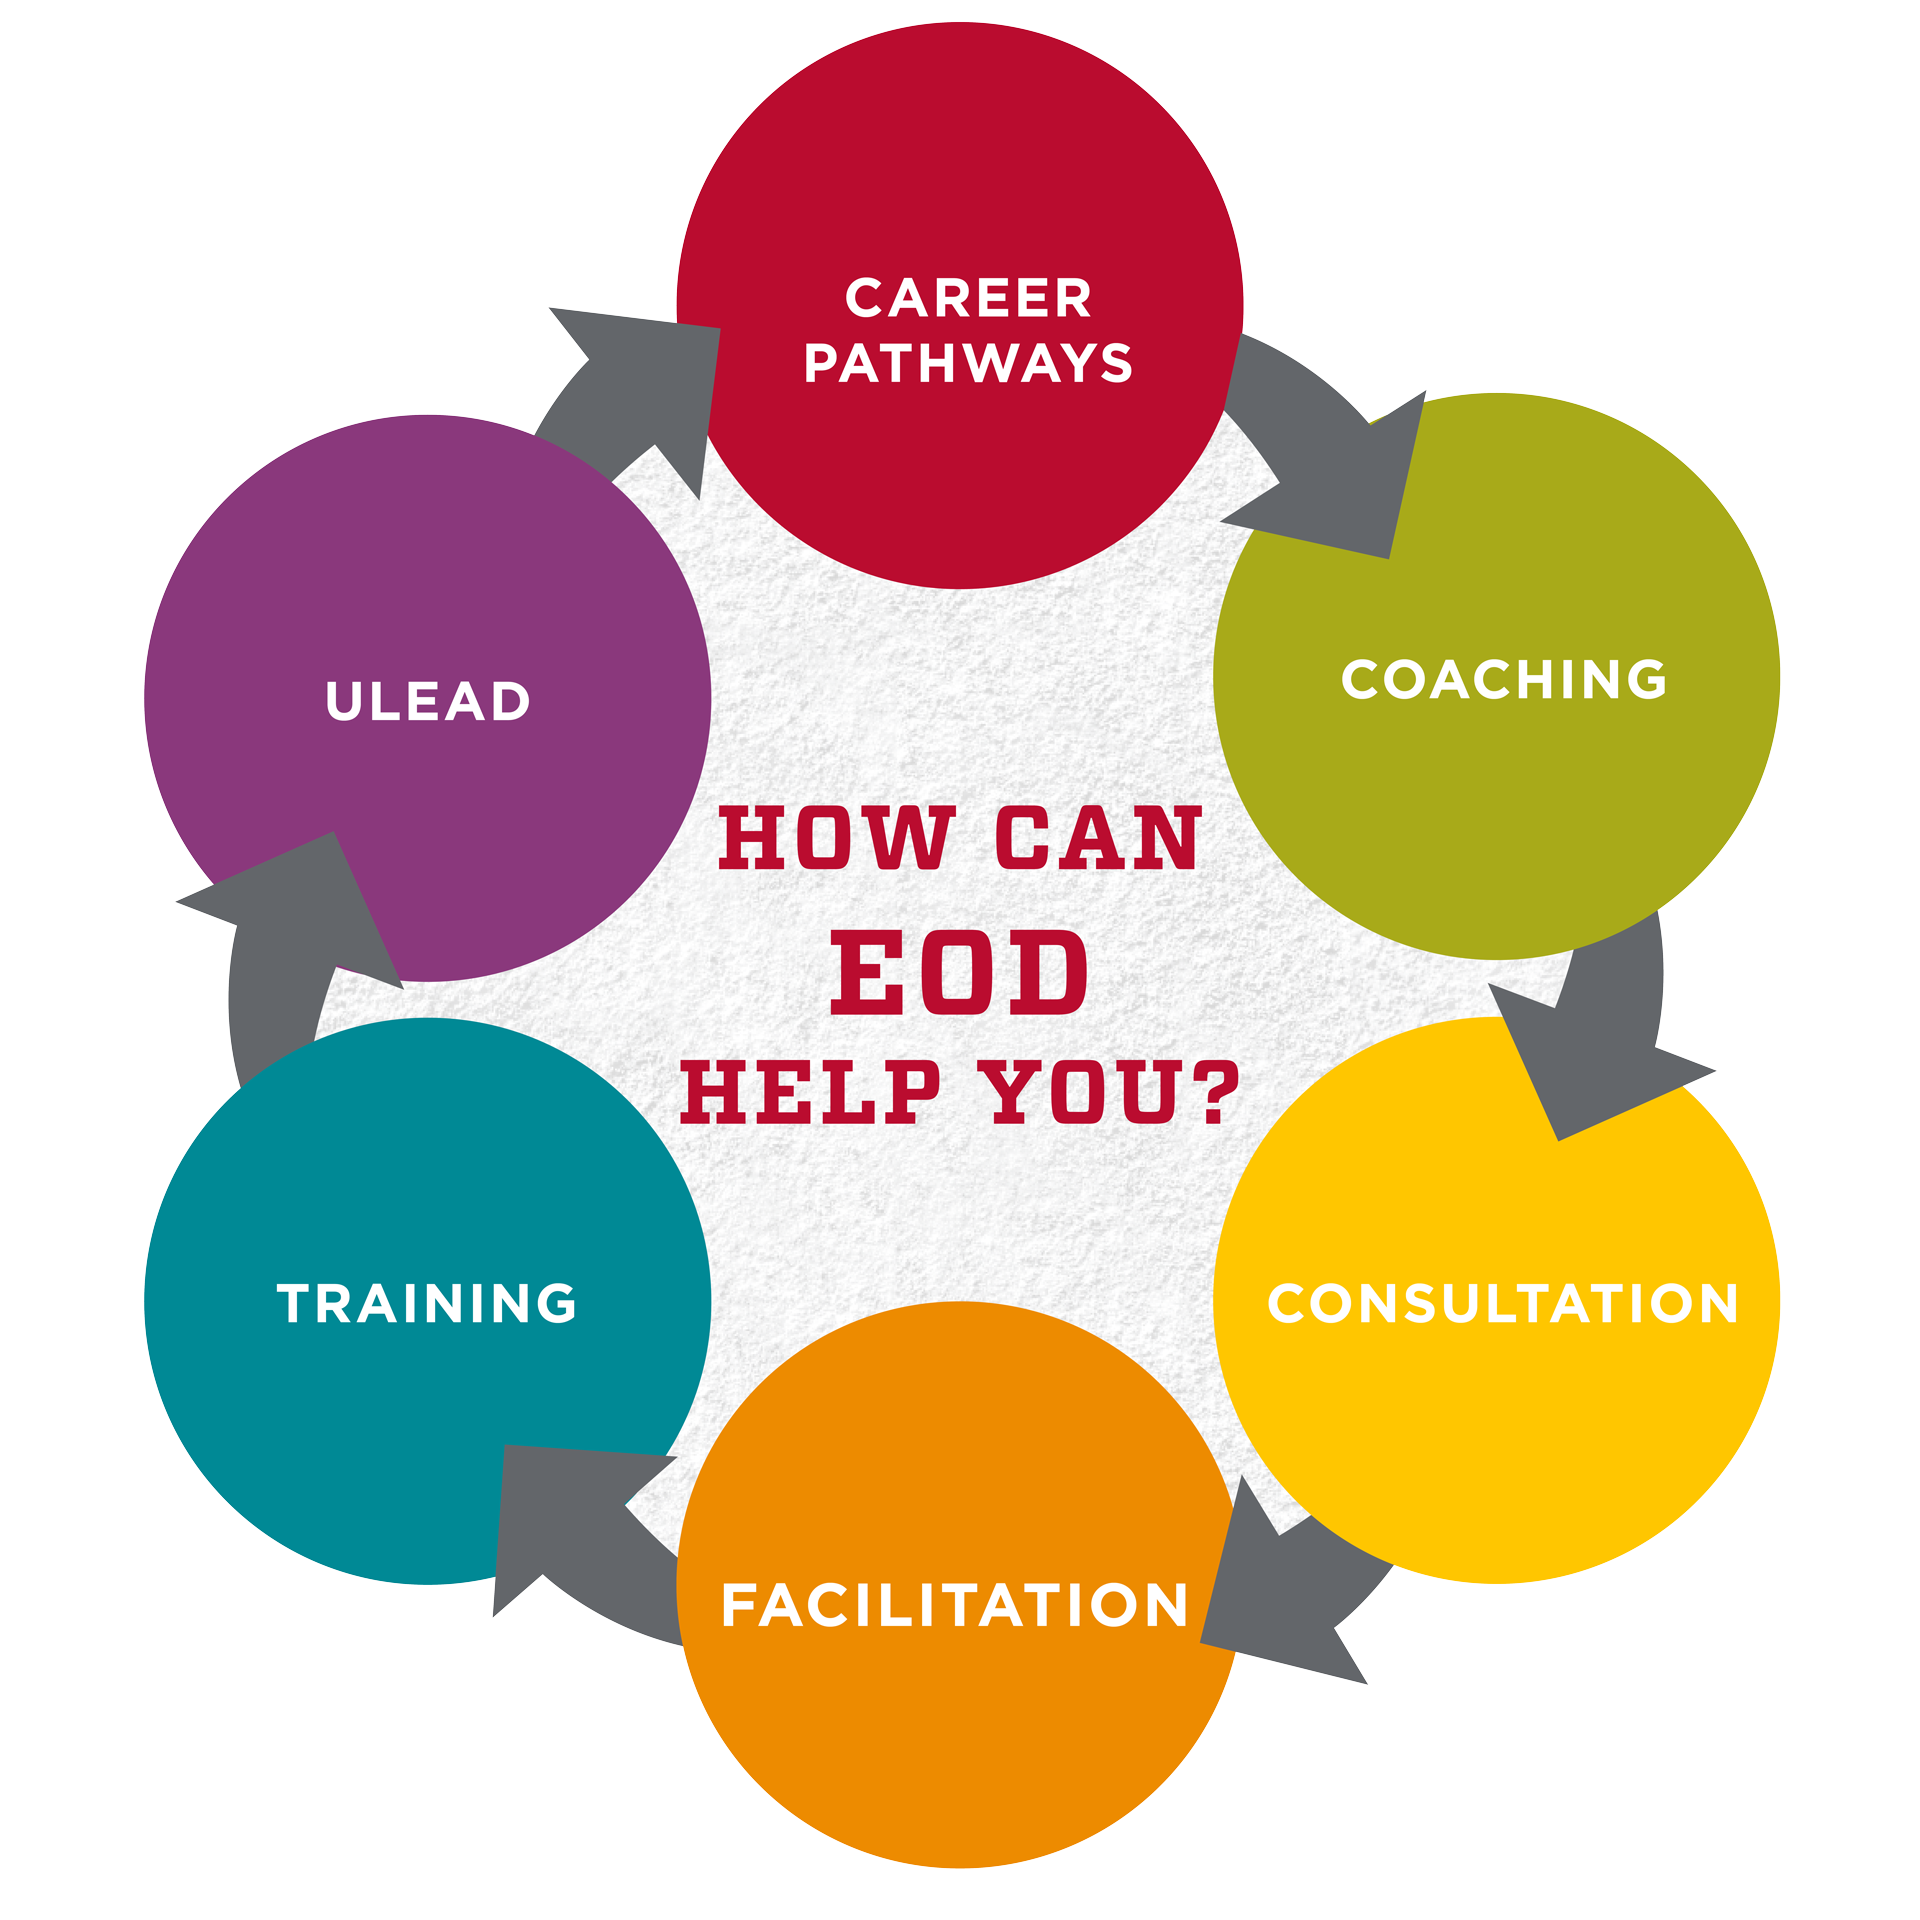 How can EOD help you? Career Pathways, Coaching, Consultation, Facilitation, Training, Ulead